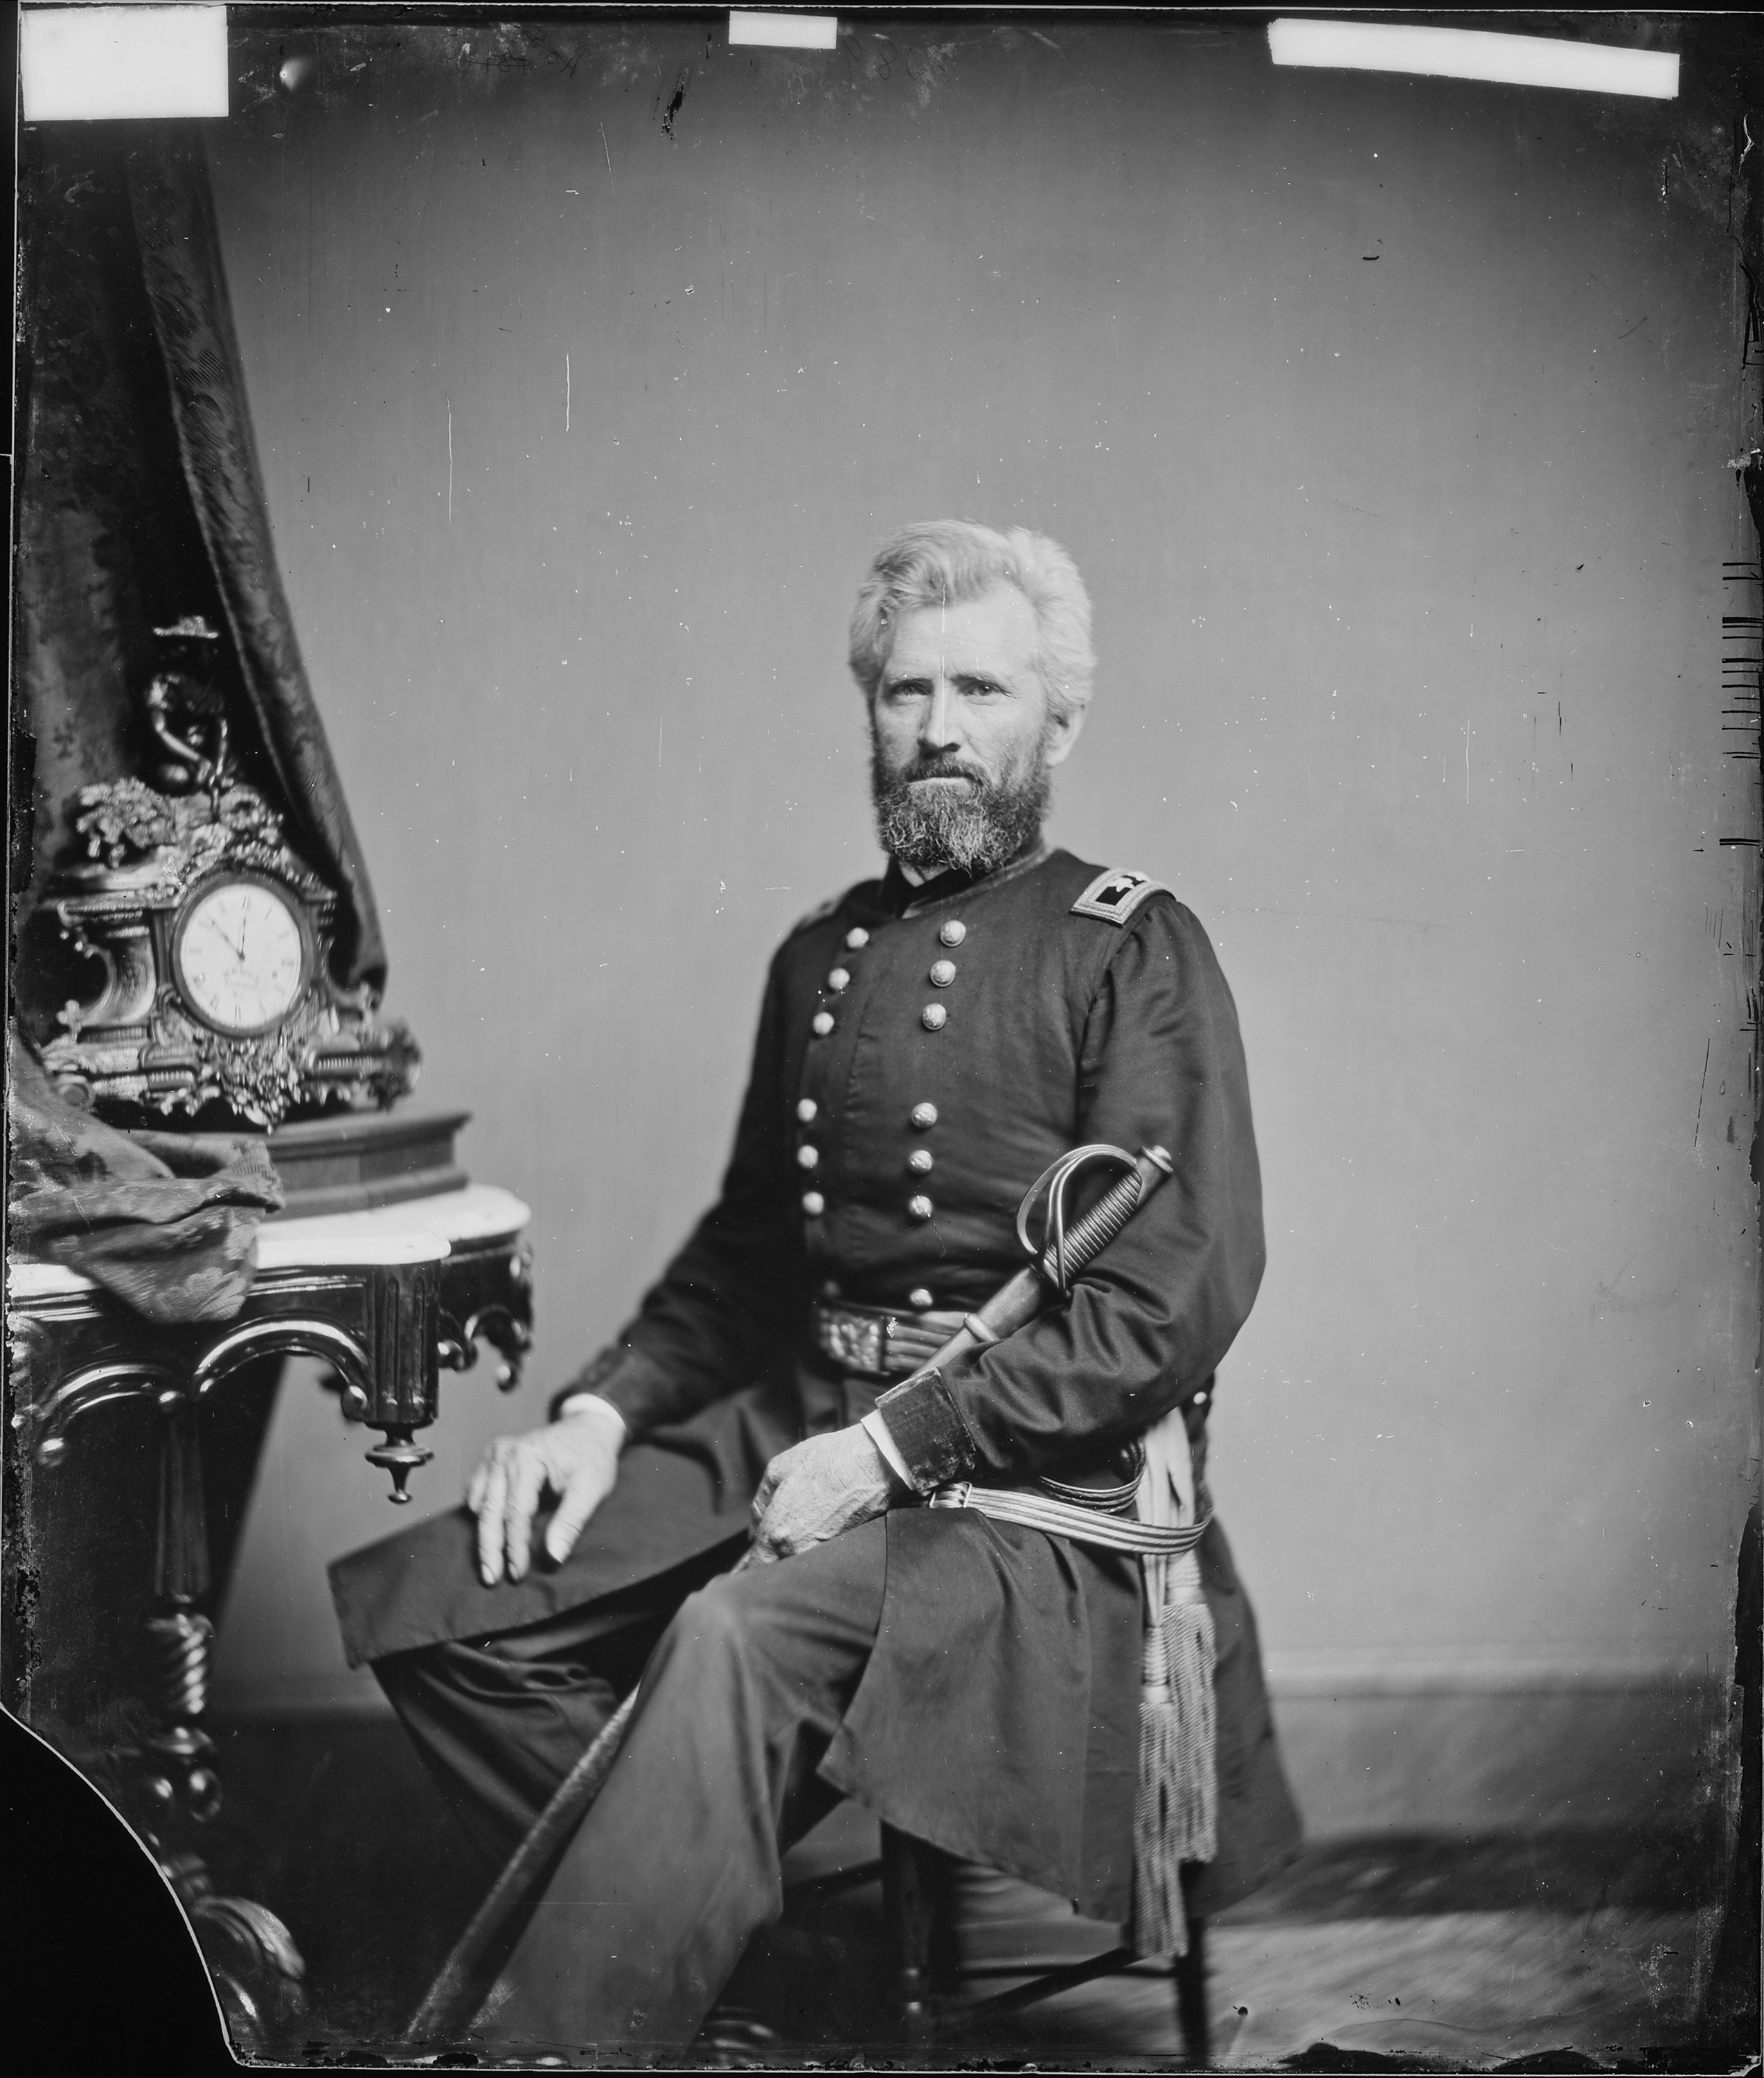 General Robert Milroy. Aggressive to a fault, he commanded Union troops two months later at the Battle of Allegheny Mountain. He was defeated by Stonewall Jackson at the Battle of McDowell, and again by General Ewell at 2nd Winchester.